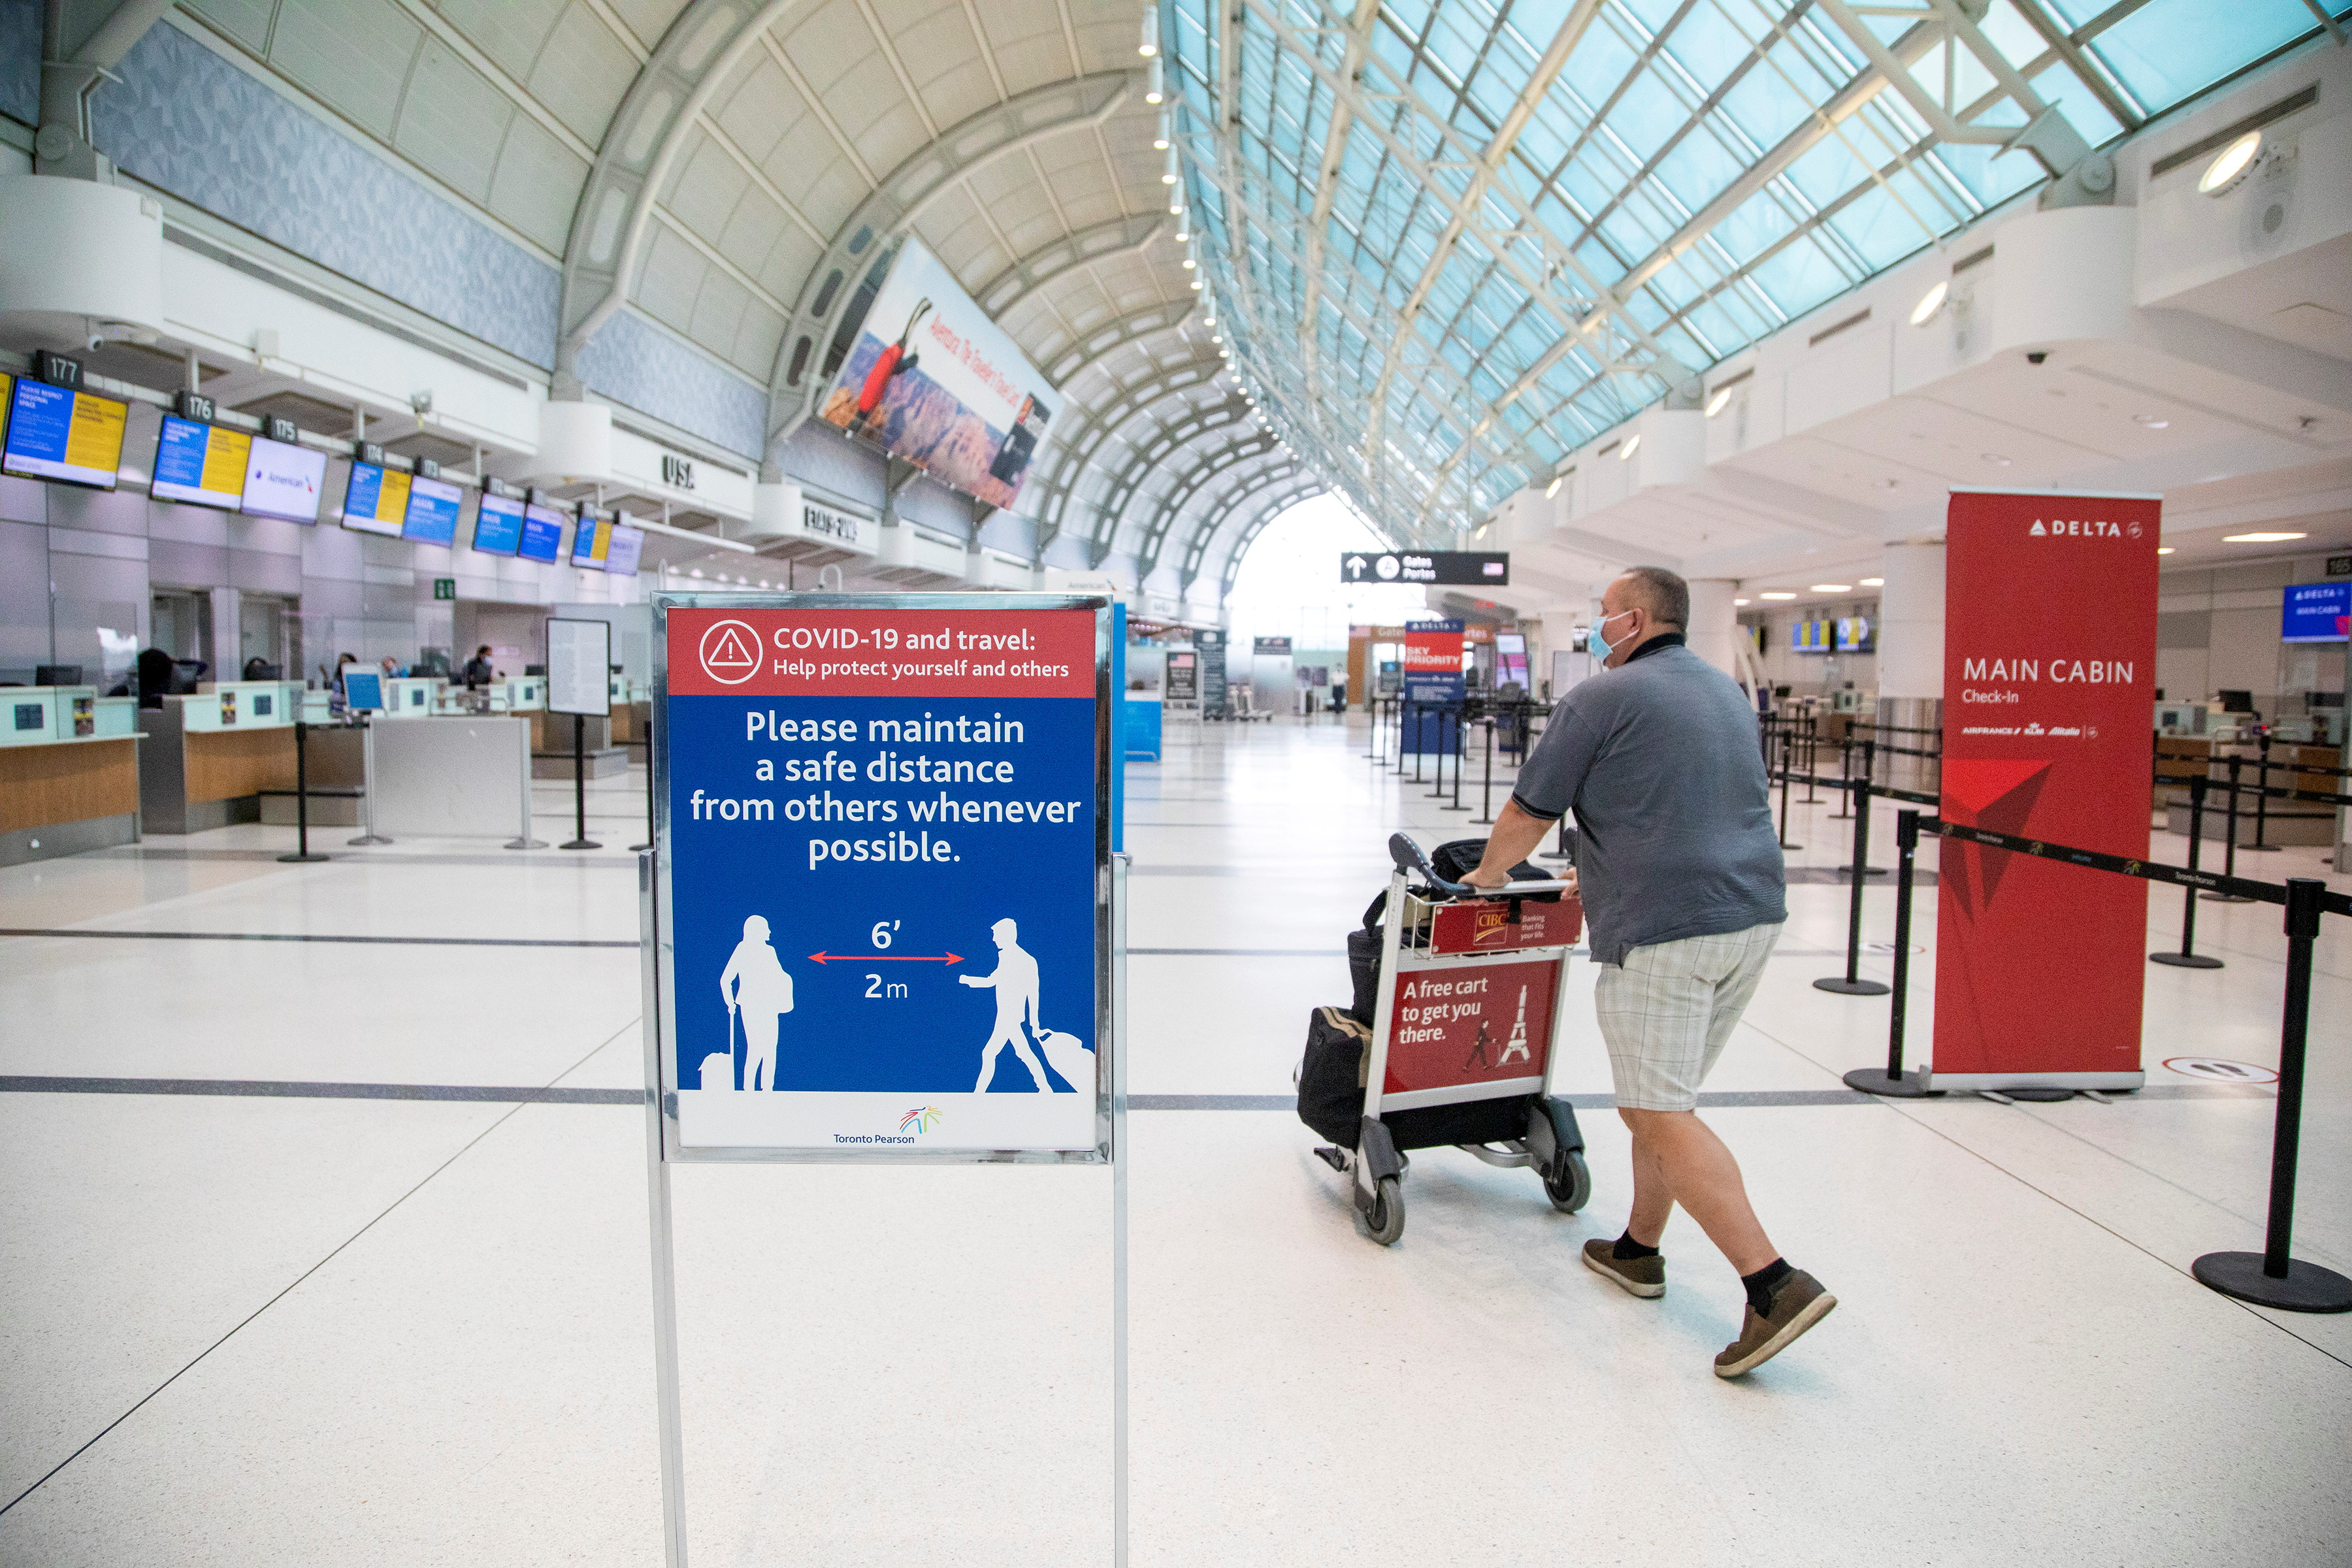 A man pushes a baggage cart wearing a mandatory face mask as a